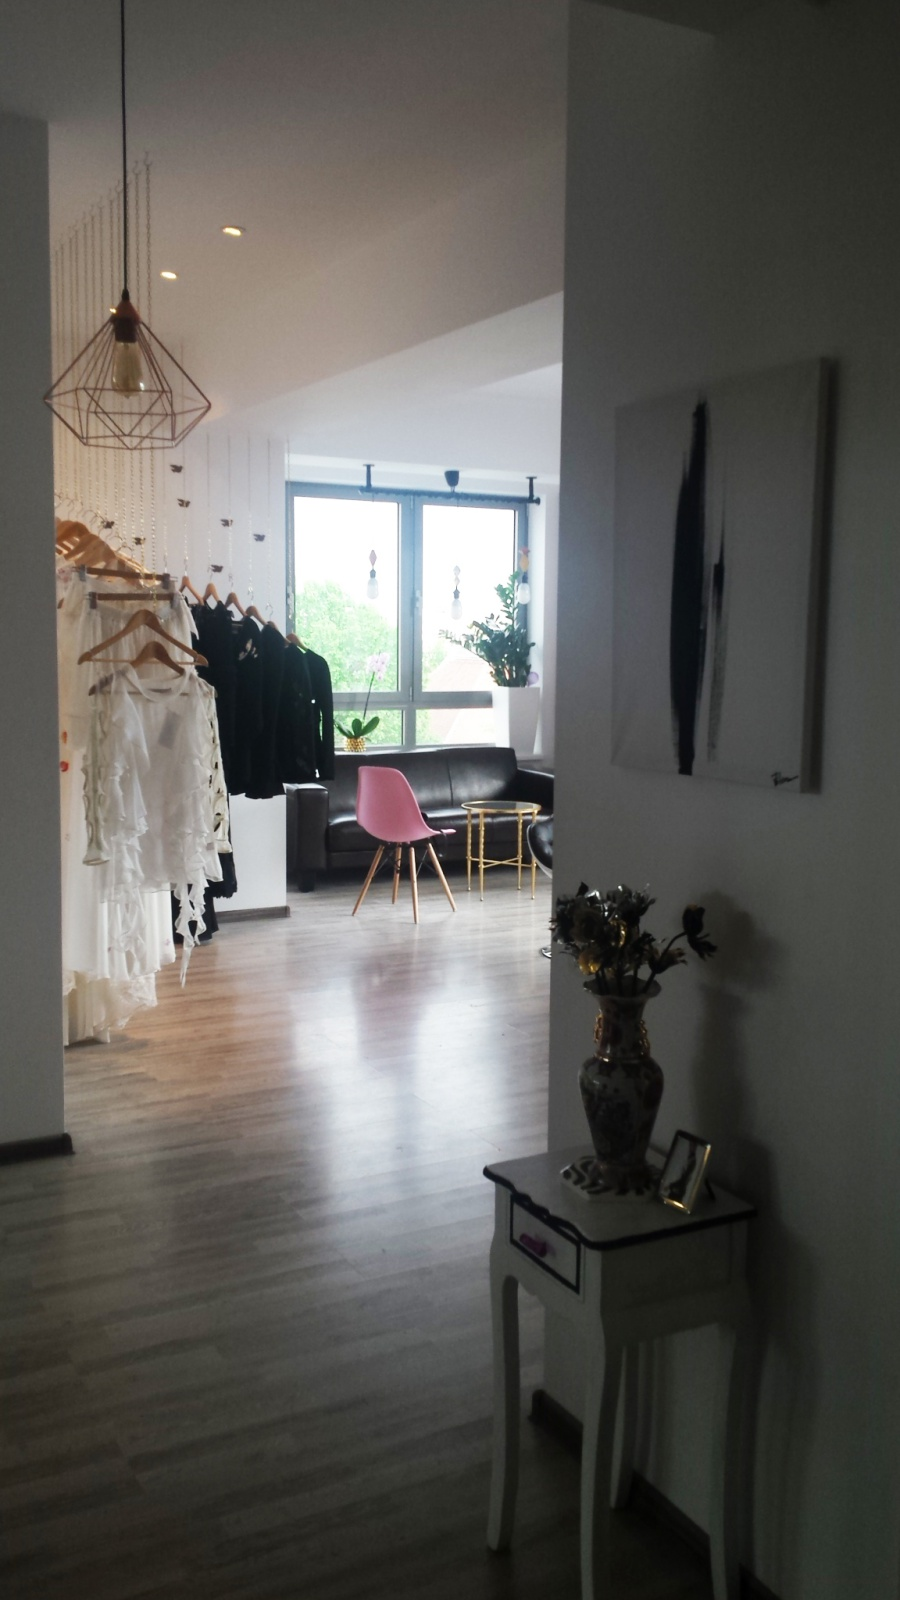 corina vladescu showroom